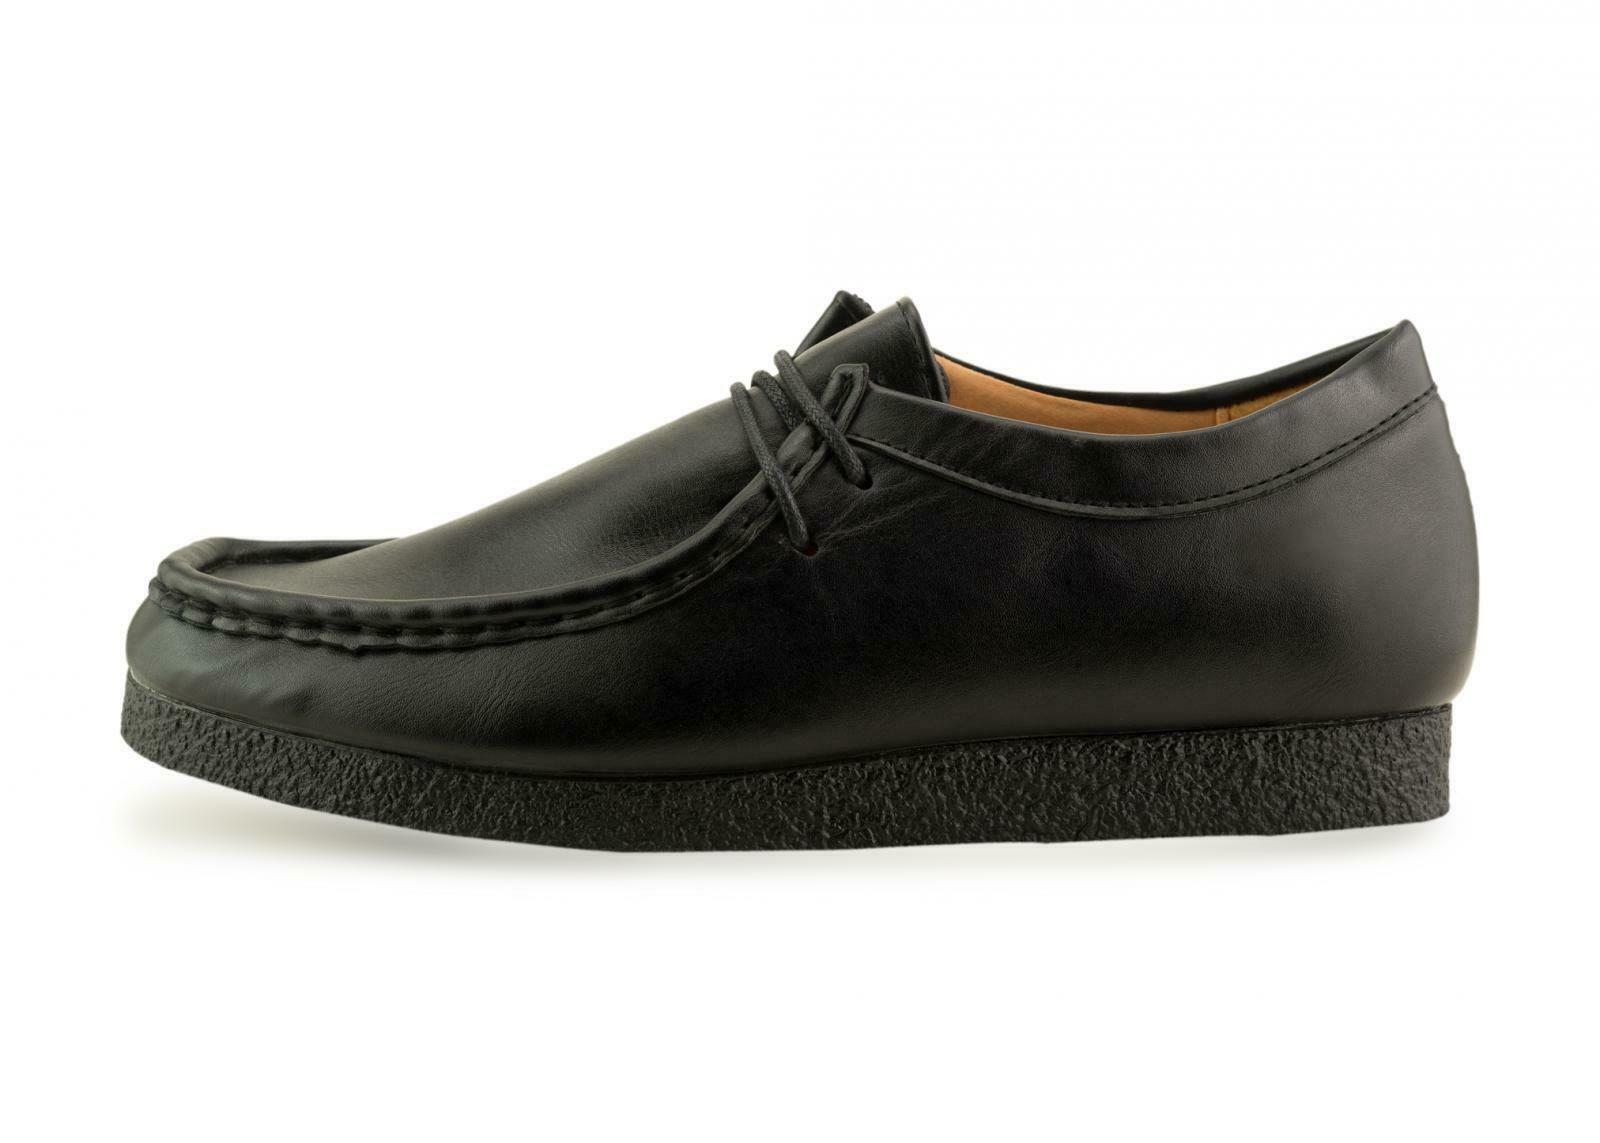 New Mens Suede Leather Lace Up Moccasin all Black Sole Shoes Size 6 7 8 9 10 11